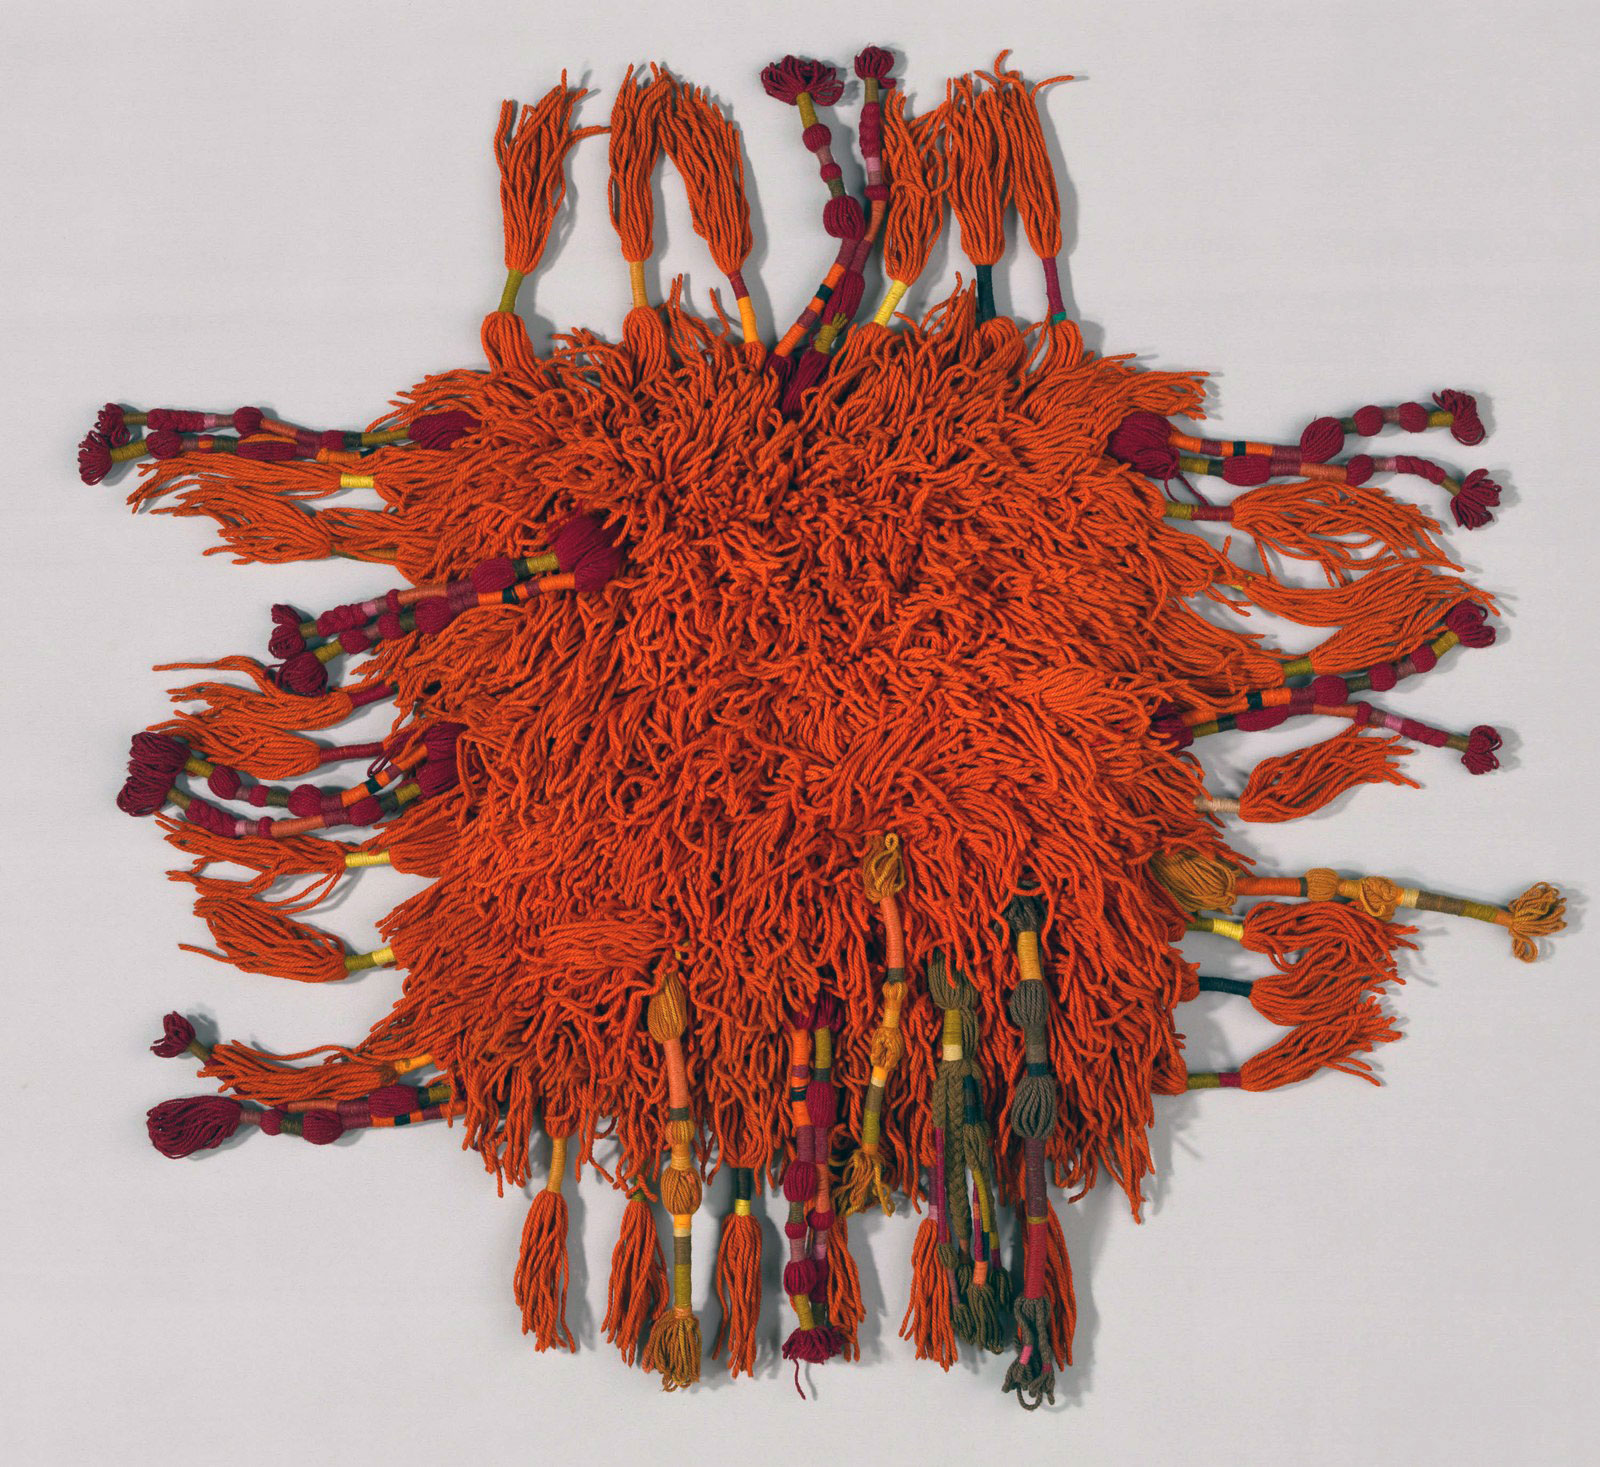 Sheila Hicks, Produced by V'SOSKE. Rug, about 1965. Gift of Sheila Hicks.